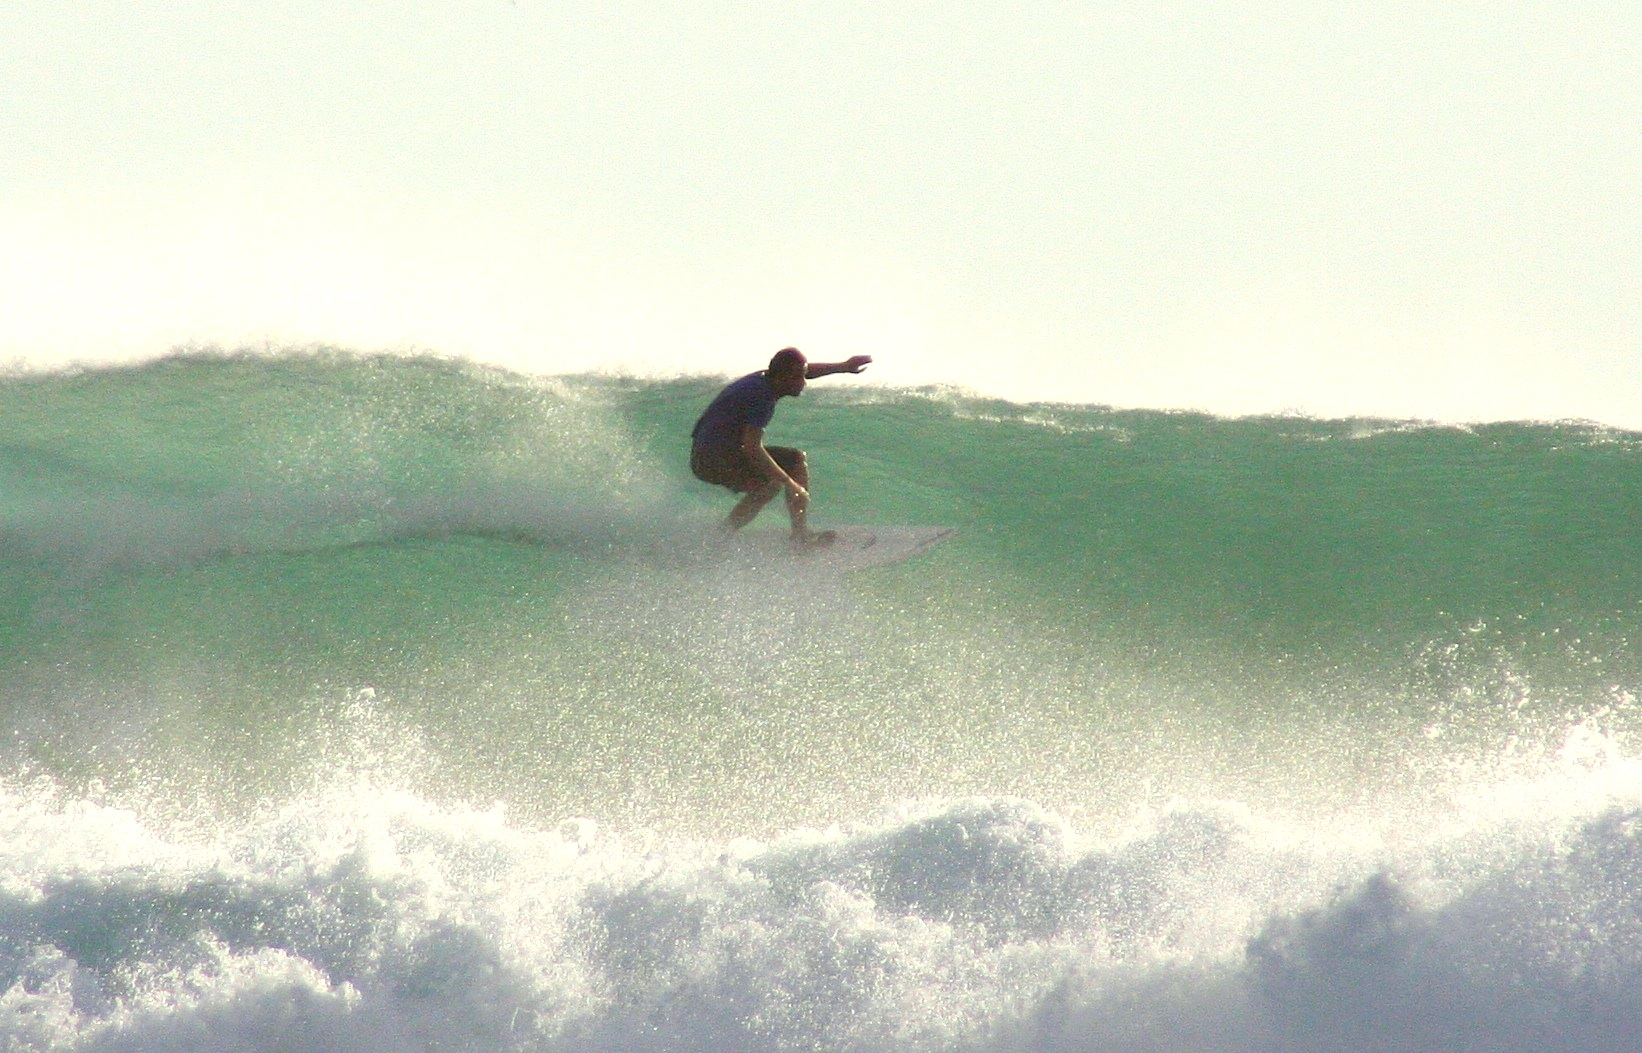 Coming Out: To Be a Gay Surfer